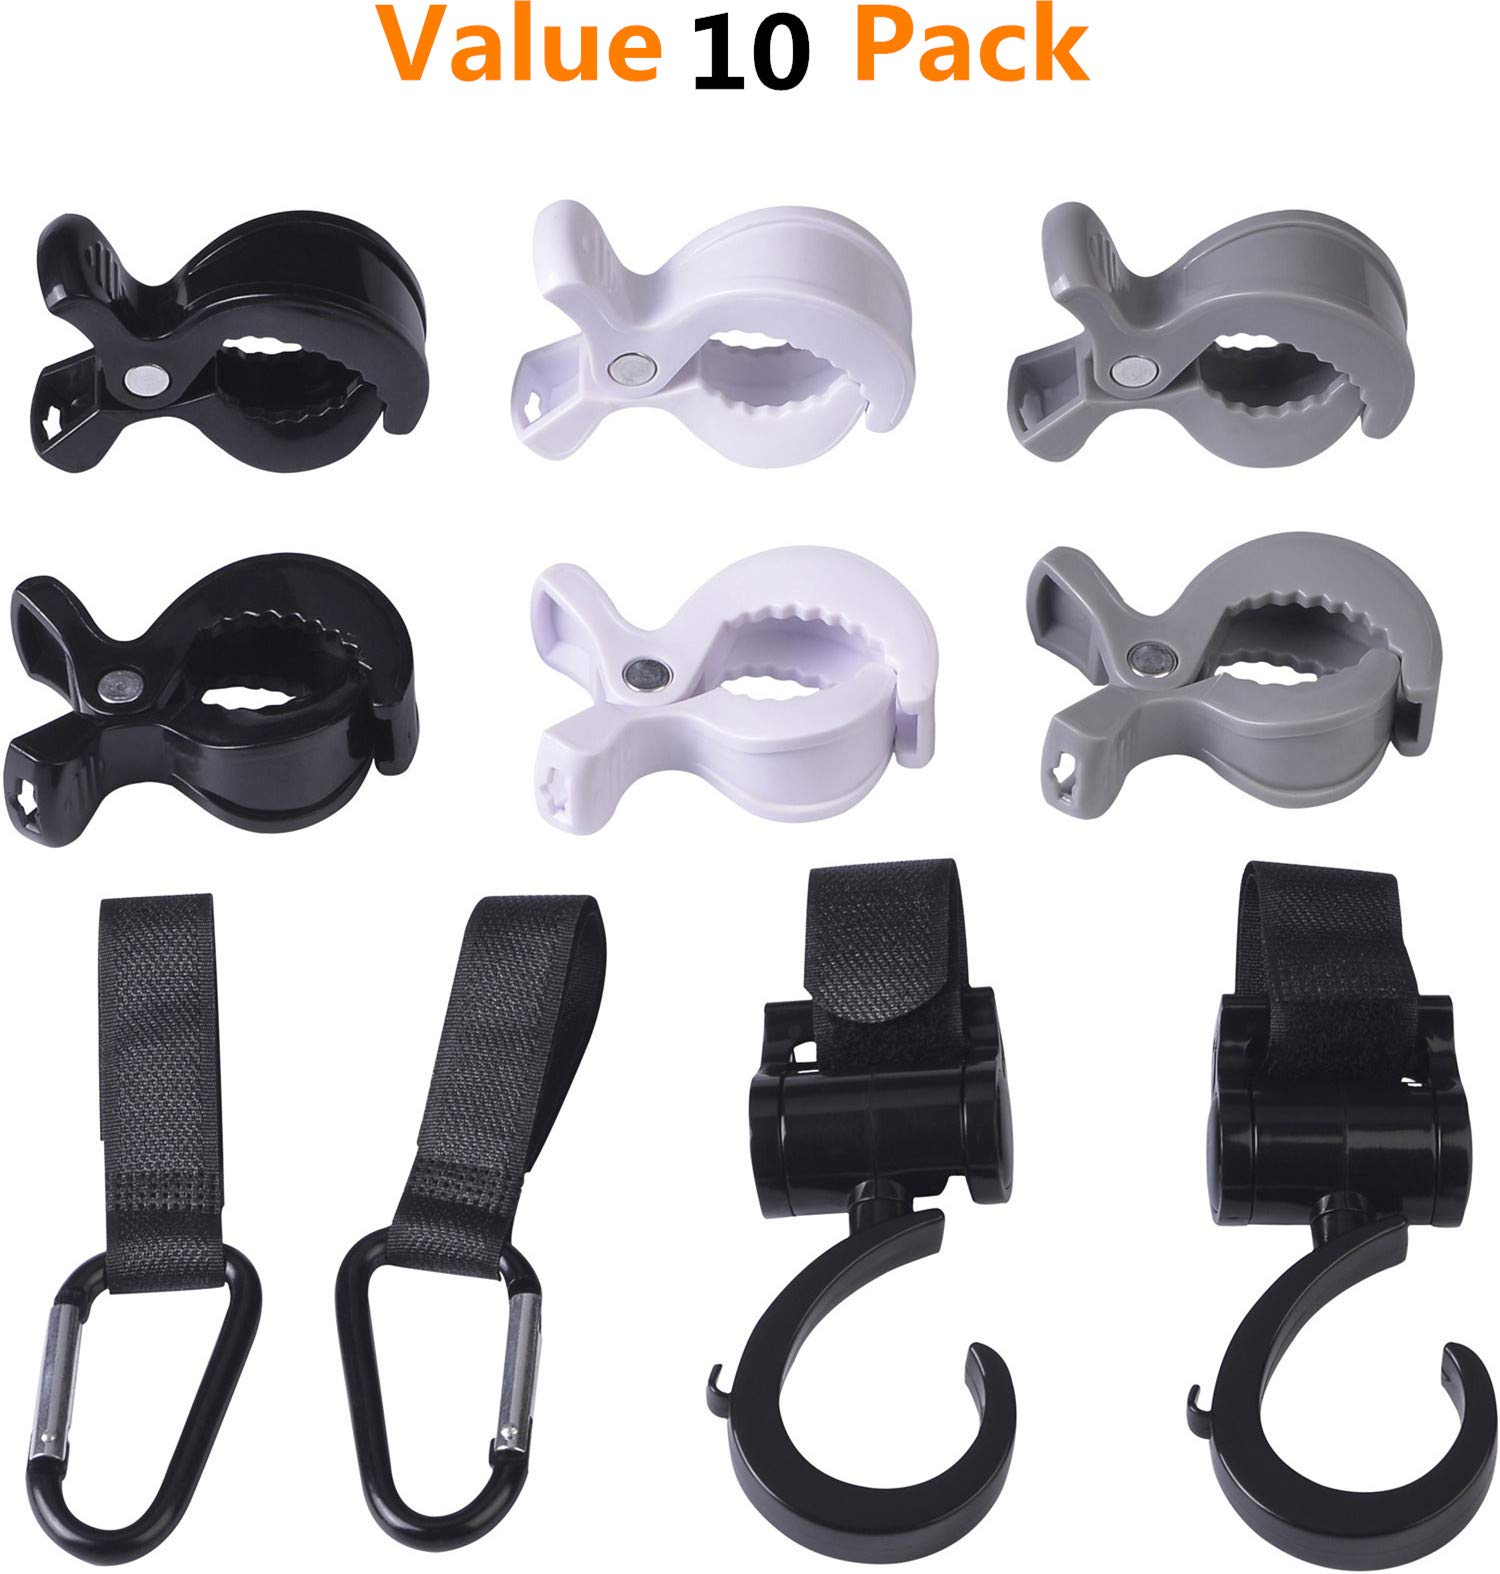 Value 10 Pack Baby Pram pegs and Stroller Hooks Set to Hook Muslin Blanket and Toys, car seat Cover Clips pram Toy Holder, Hanger for Baby Diaper Bags, Shopping Bags, Groceries, Clothing, Purse